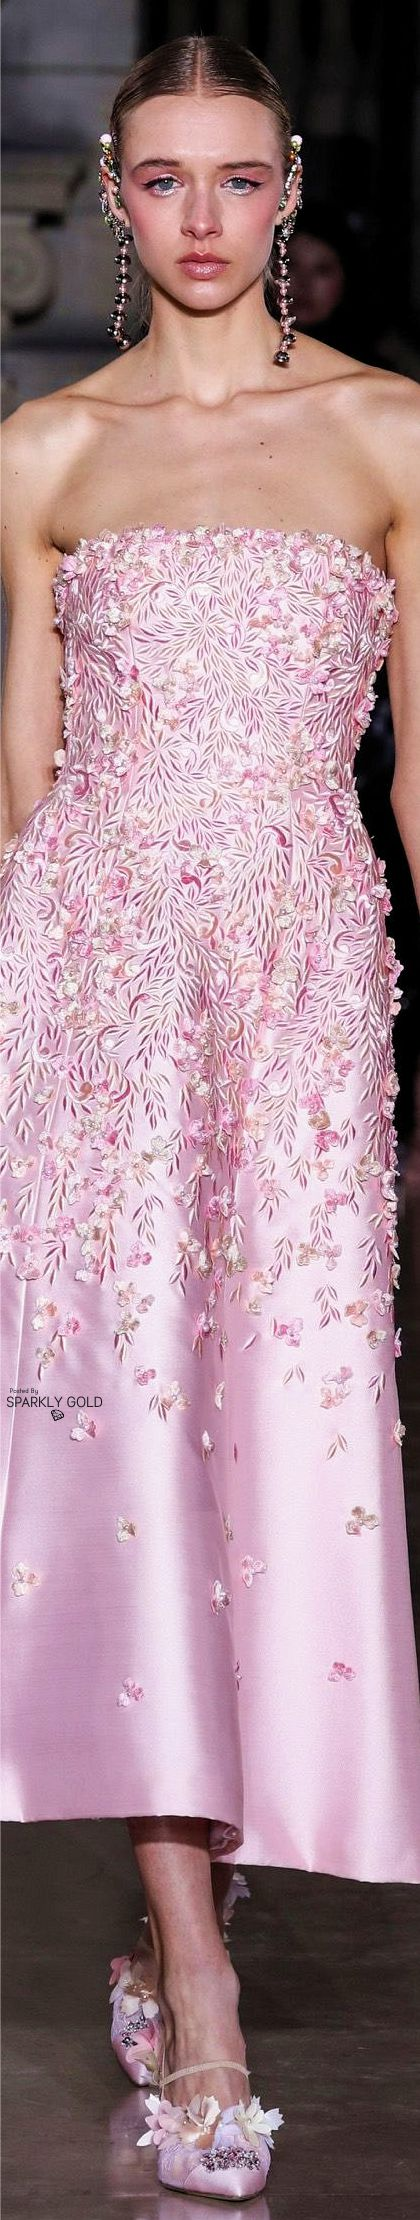 Georges Hobeika S/S 2017 Couture   Debs dresses   Pinterest